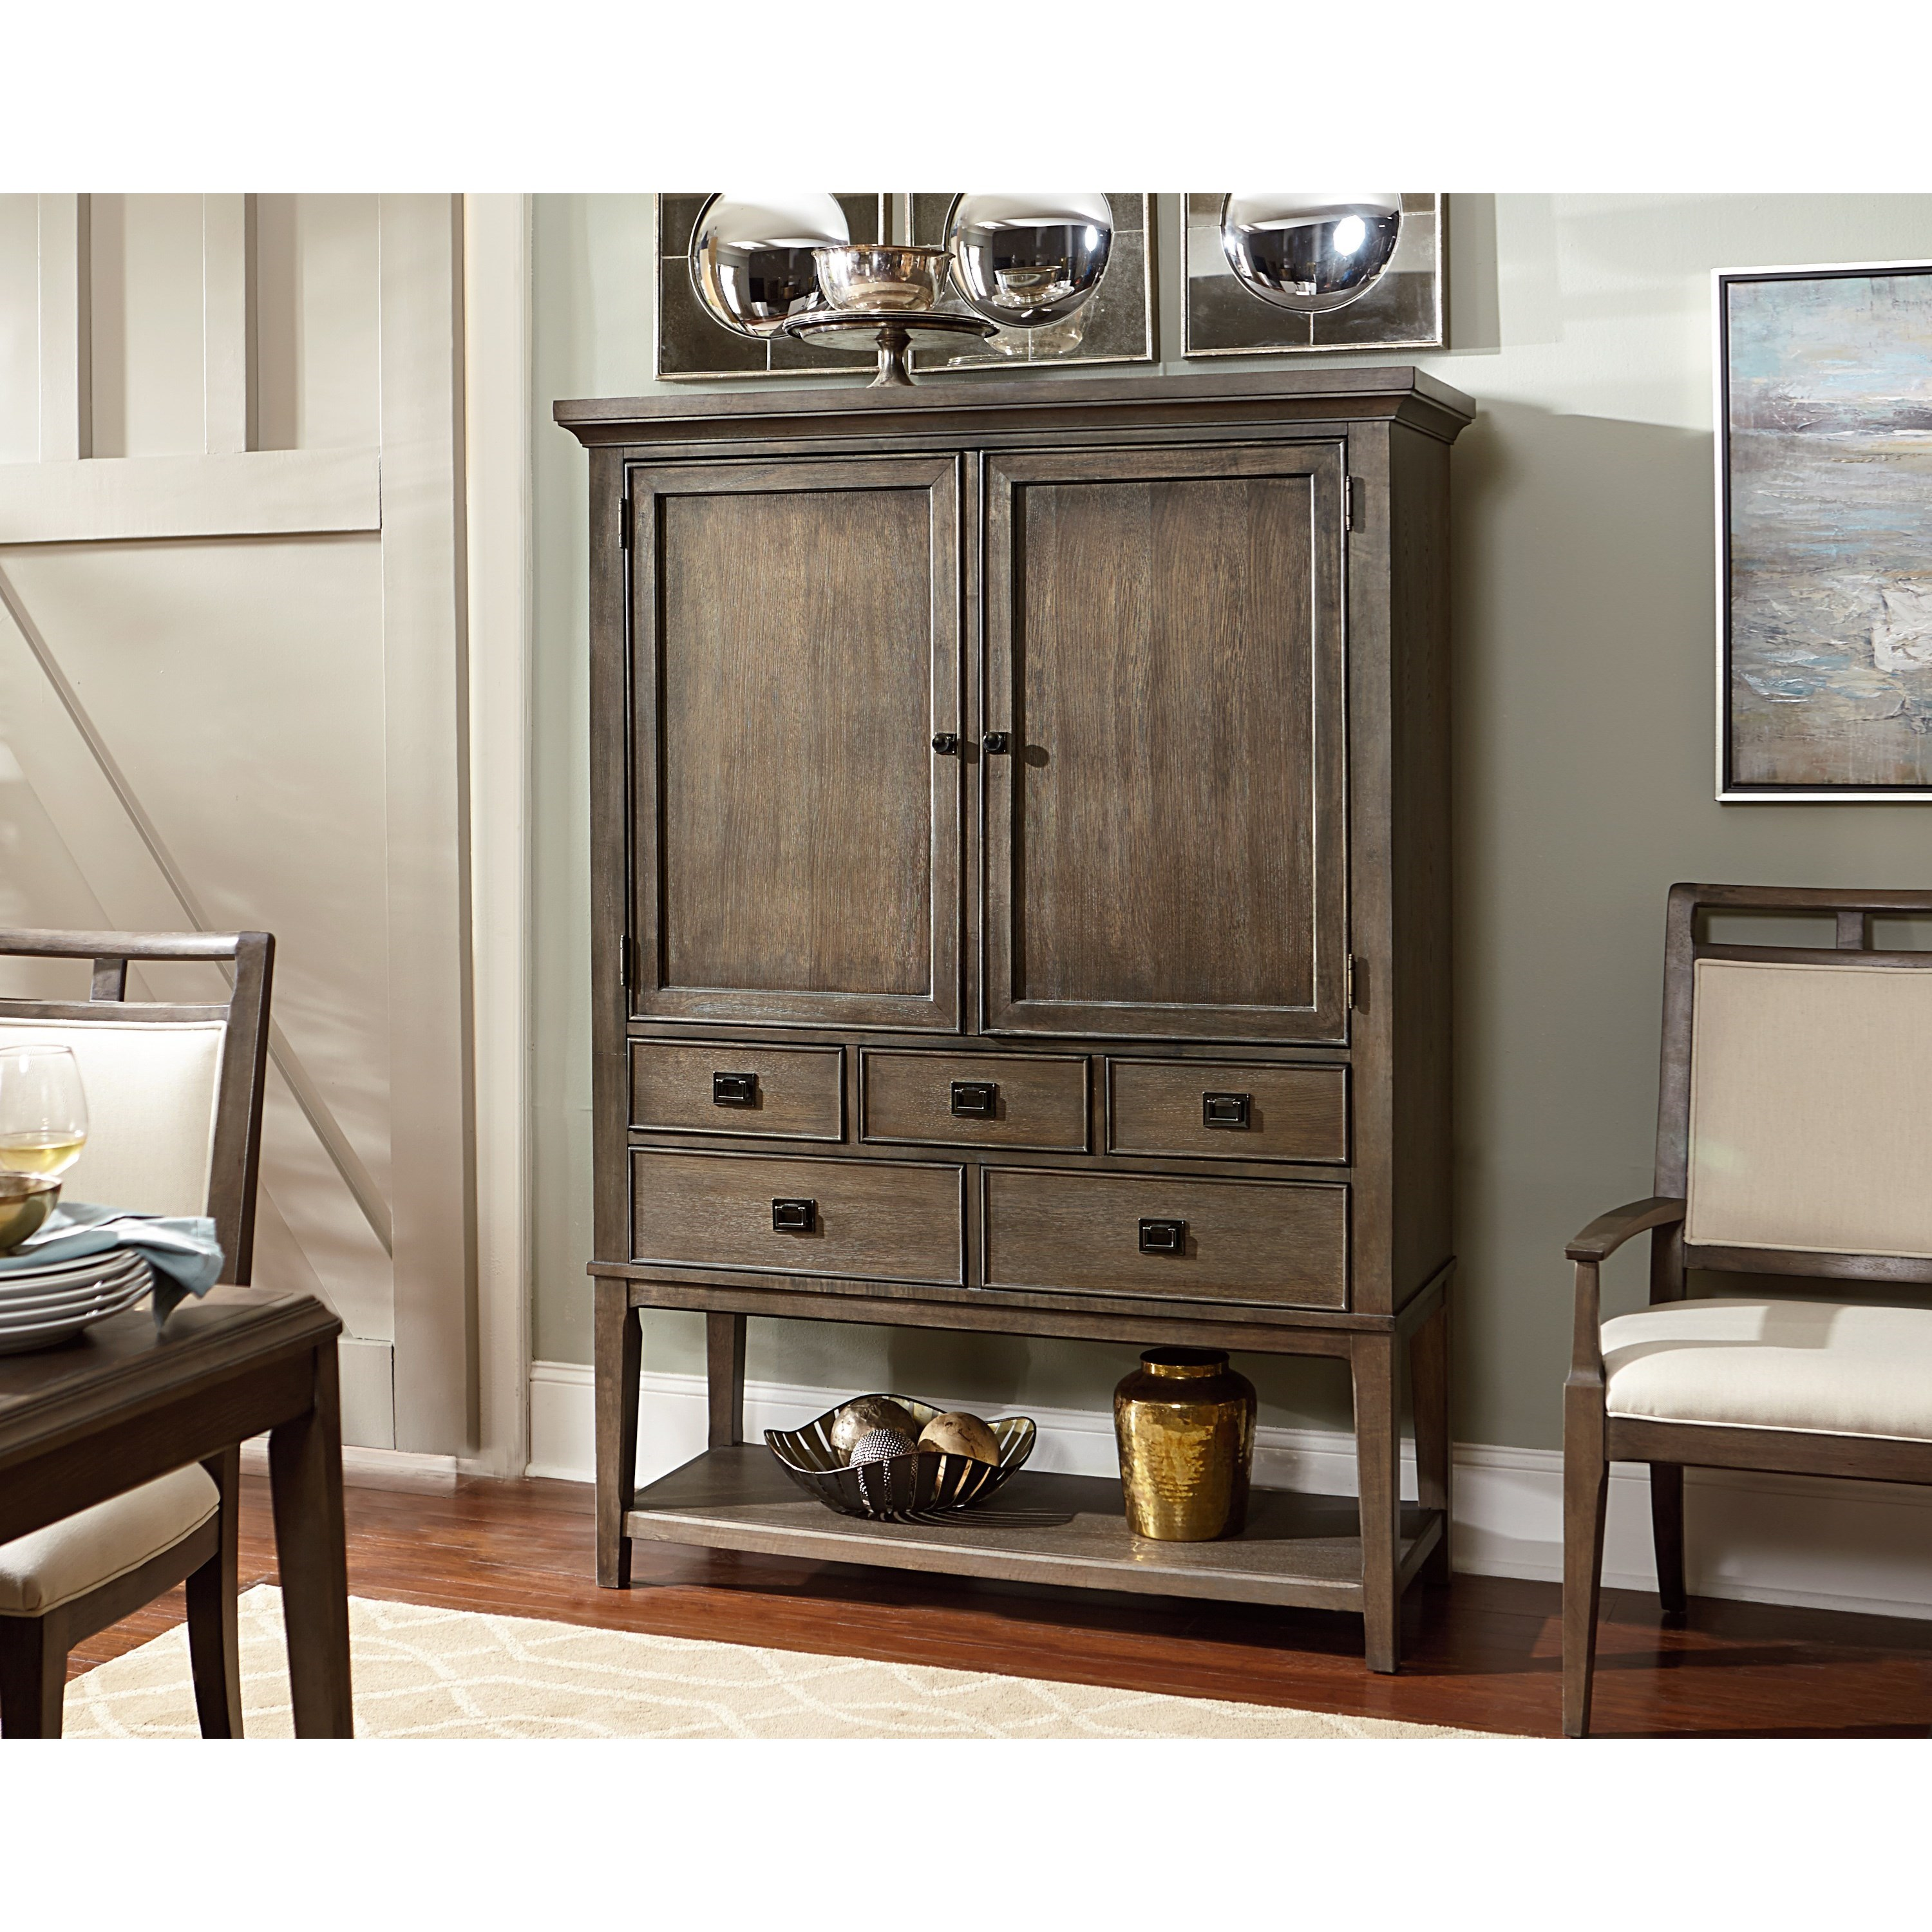 Contemporary Bar Cabinet With 2 Doors And 5 Drawers And A Mirrored Back